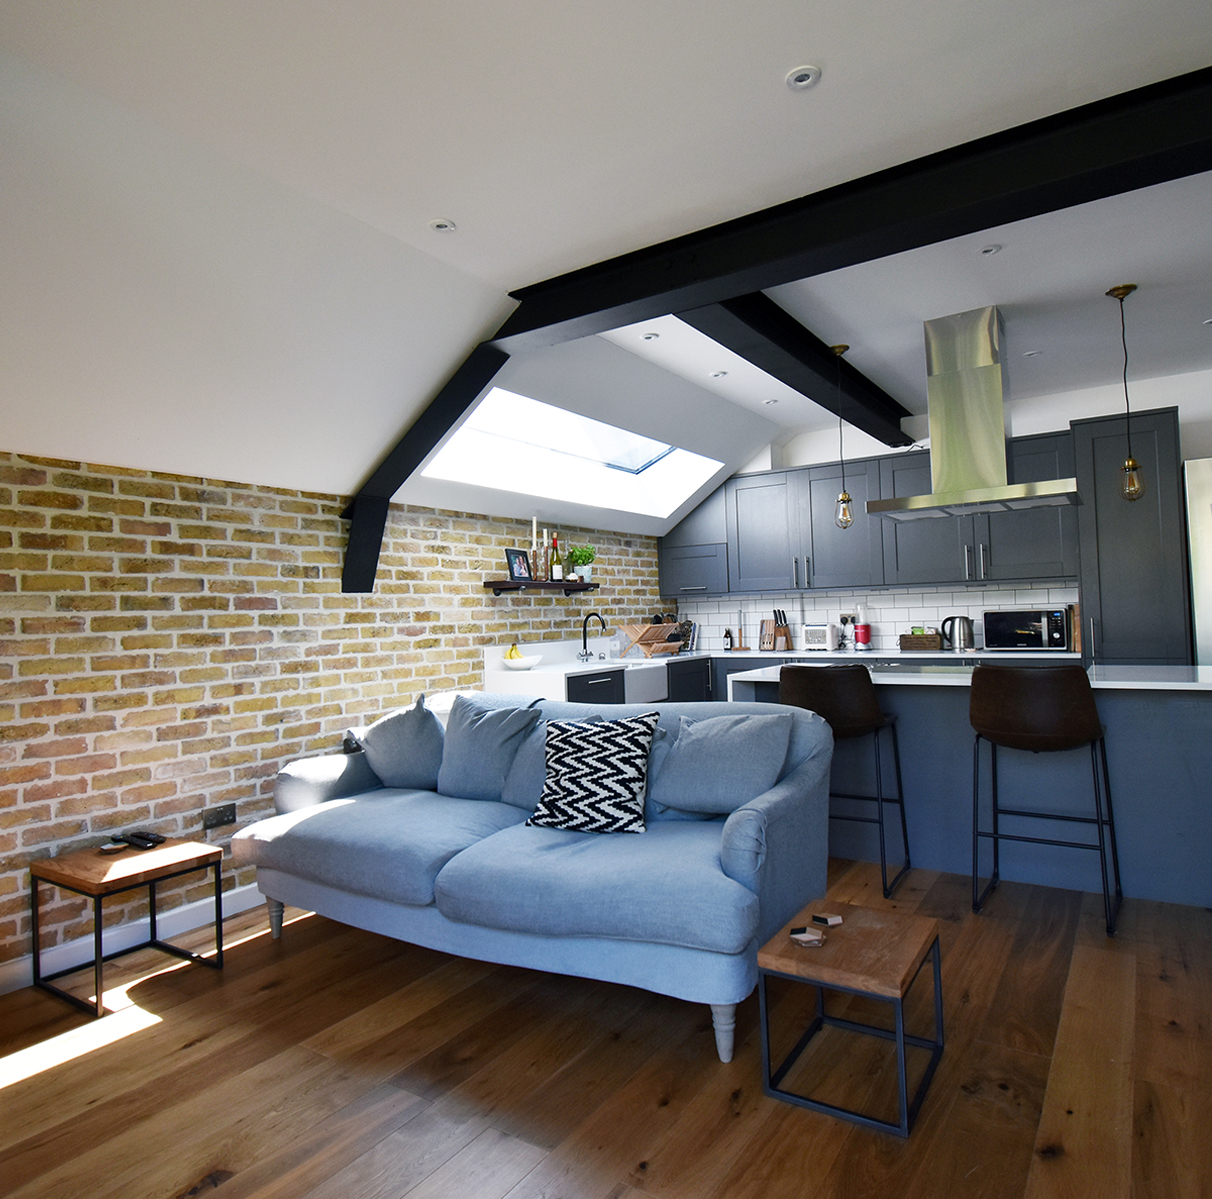 Home extension and full refurbishment, East Dulwich SE22